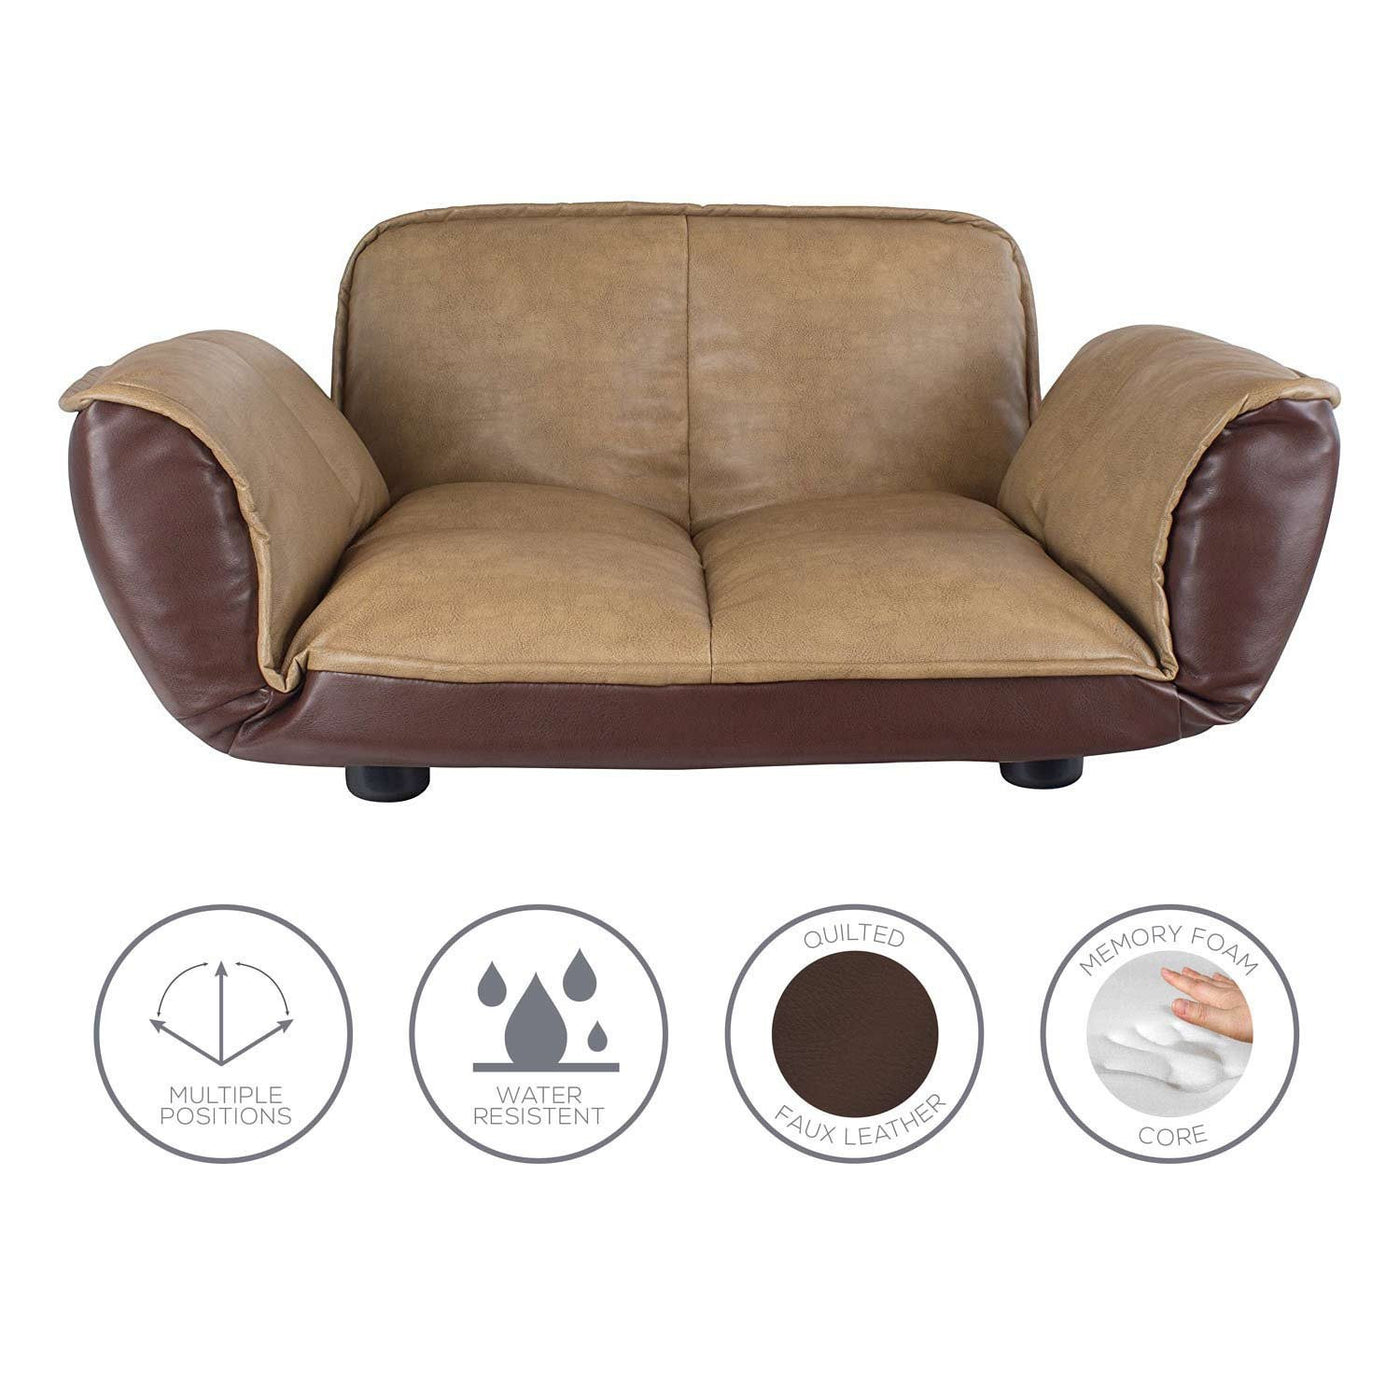 Reclining Pet Sofa with Water Resistant Faux Leather Finish